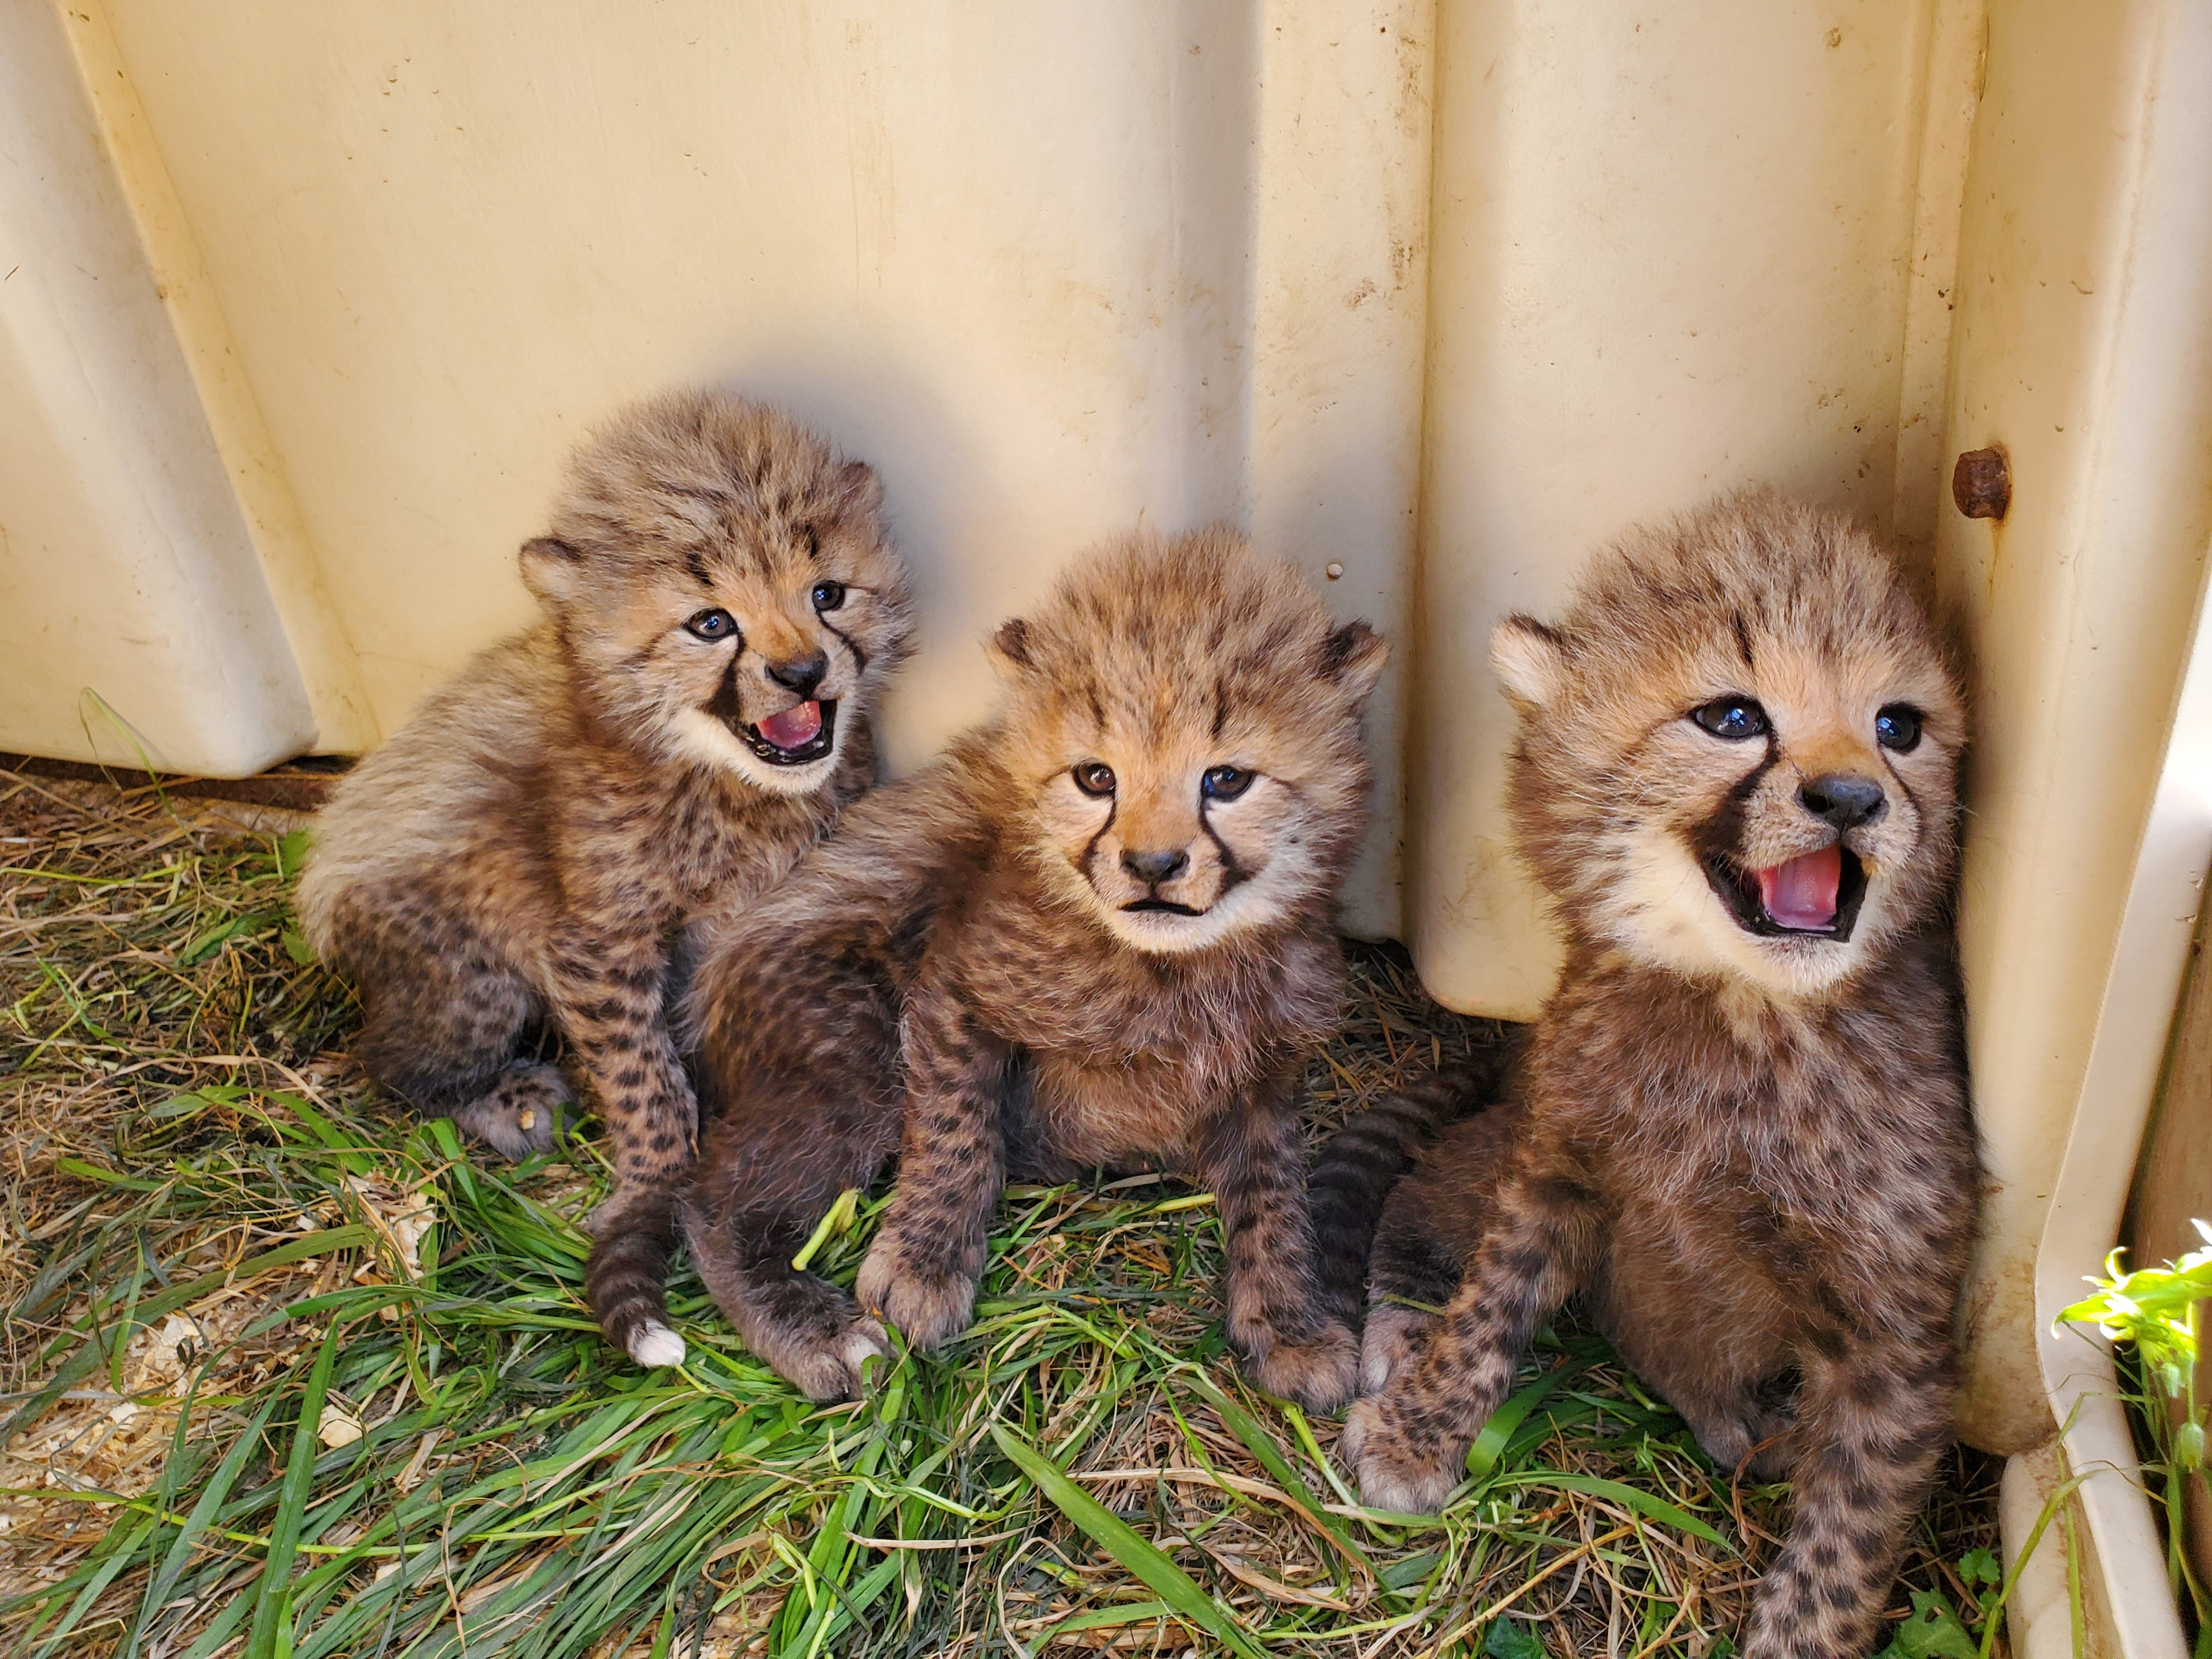 Three baby cheetahs in their enclosure